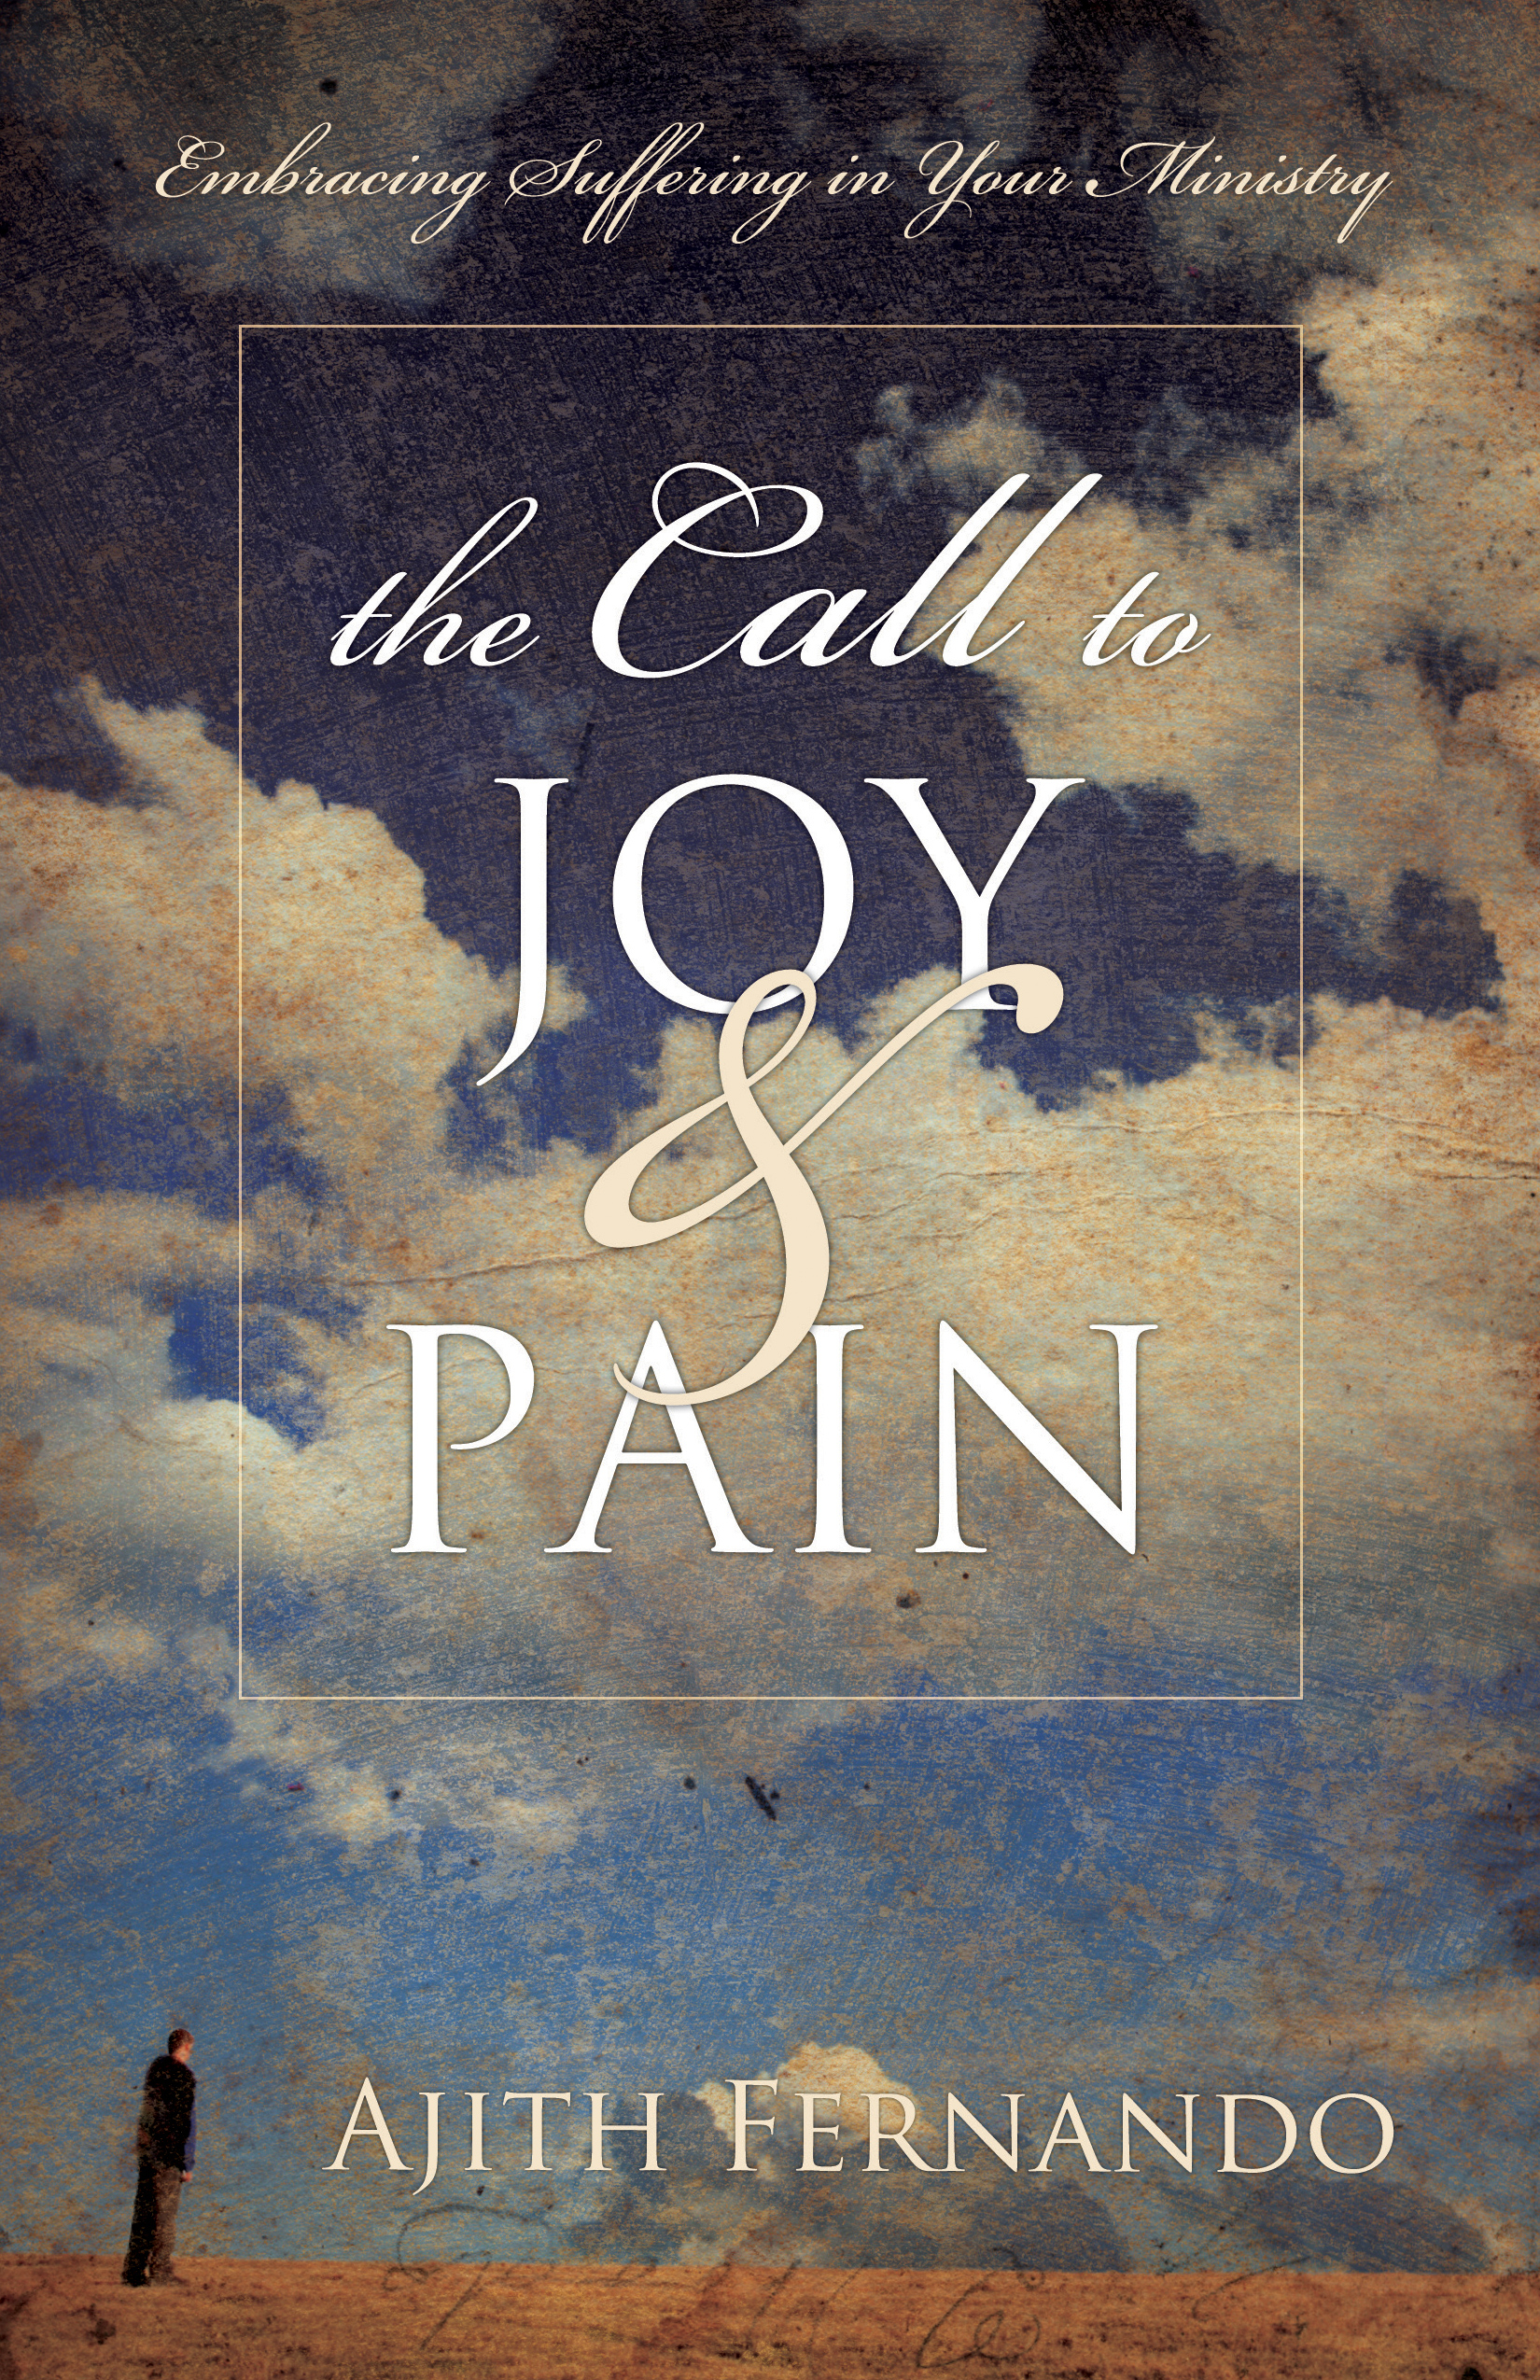 Call to Joy and Pain